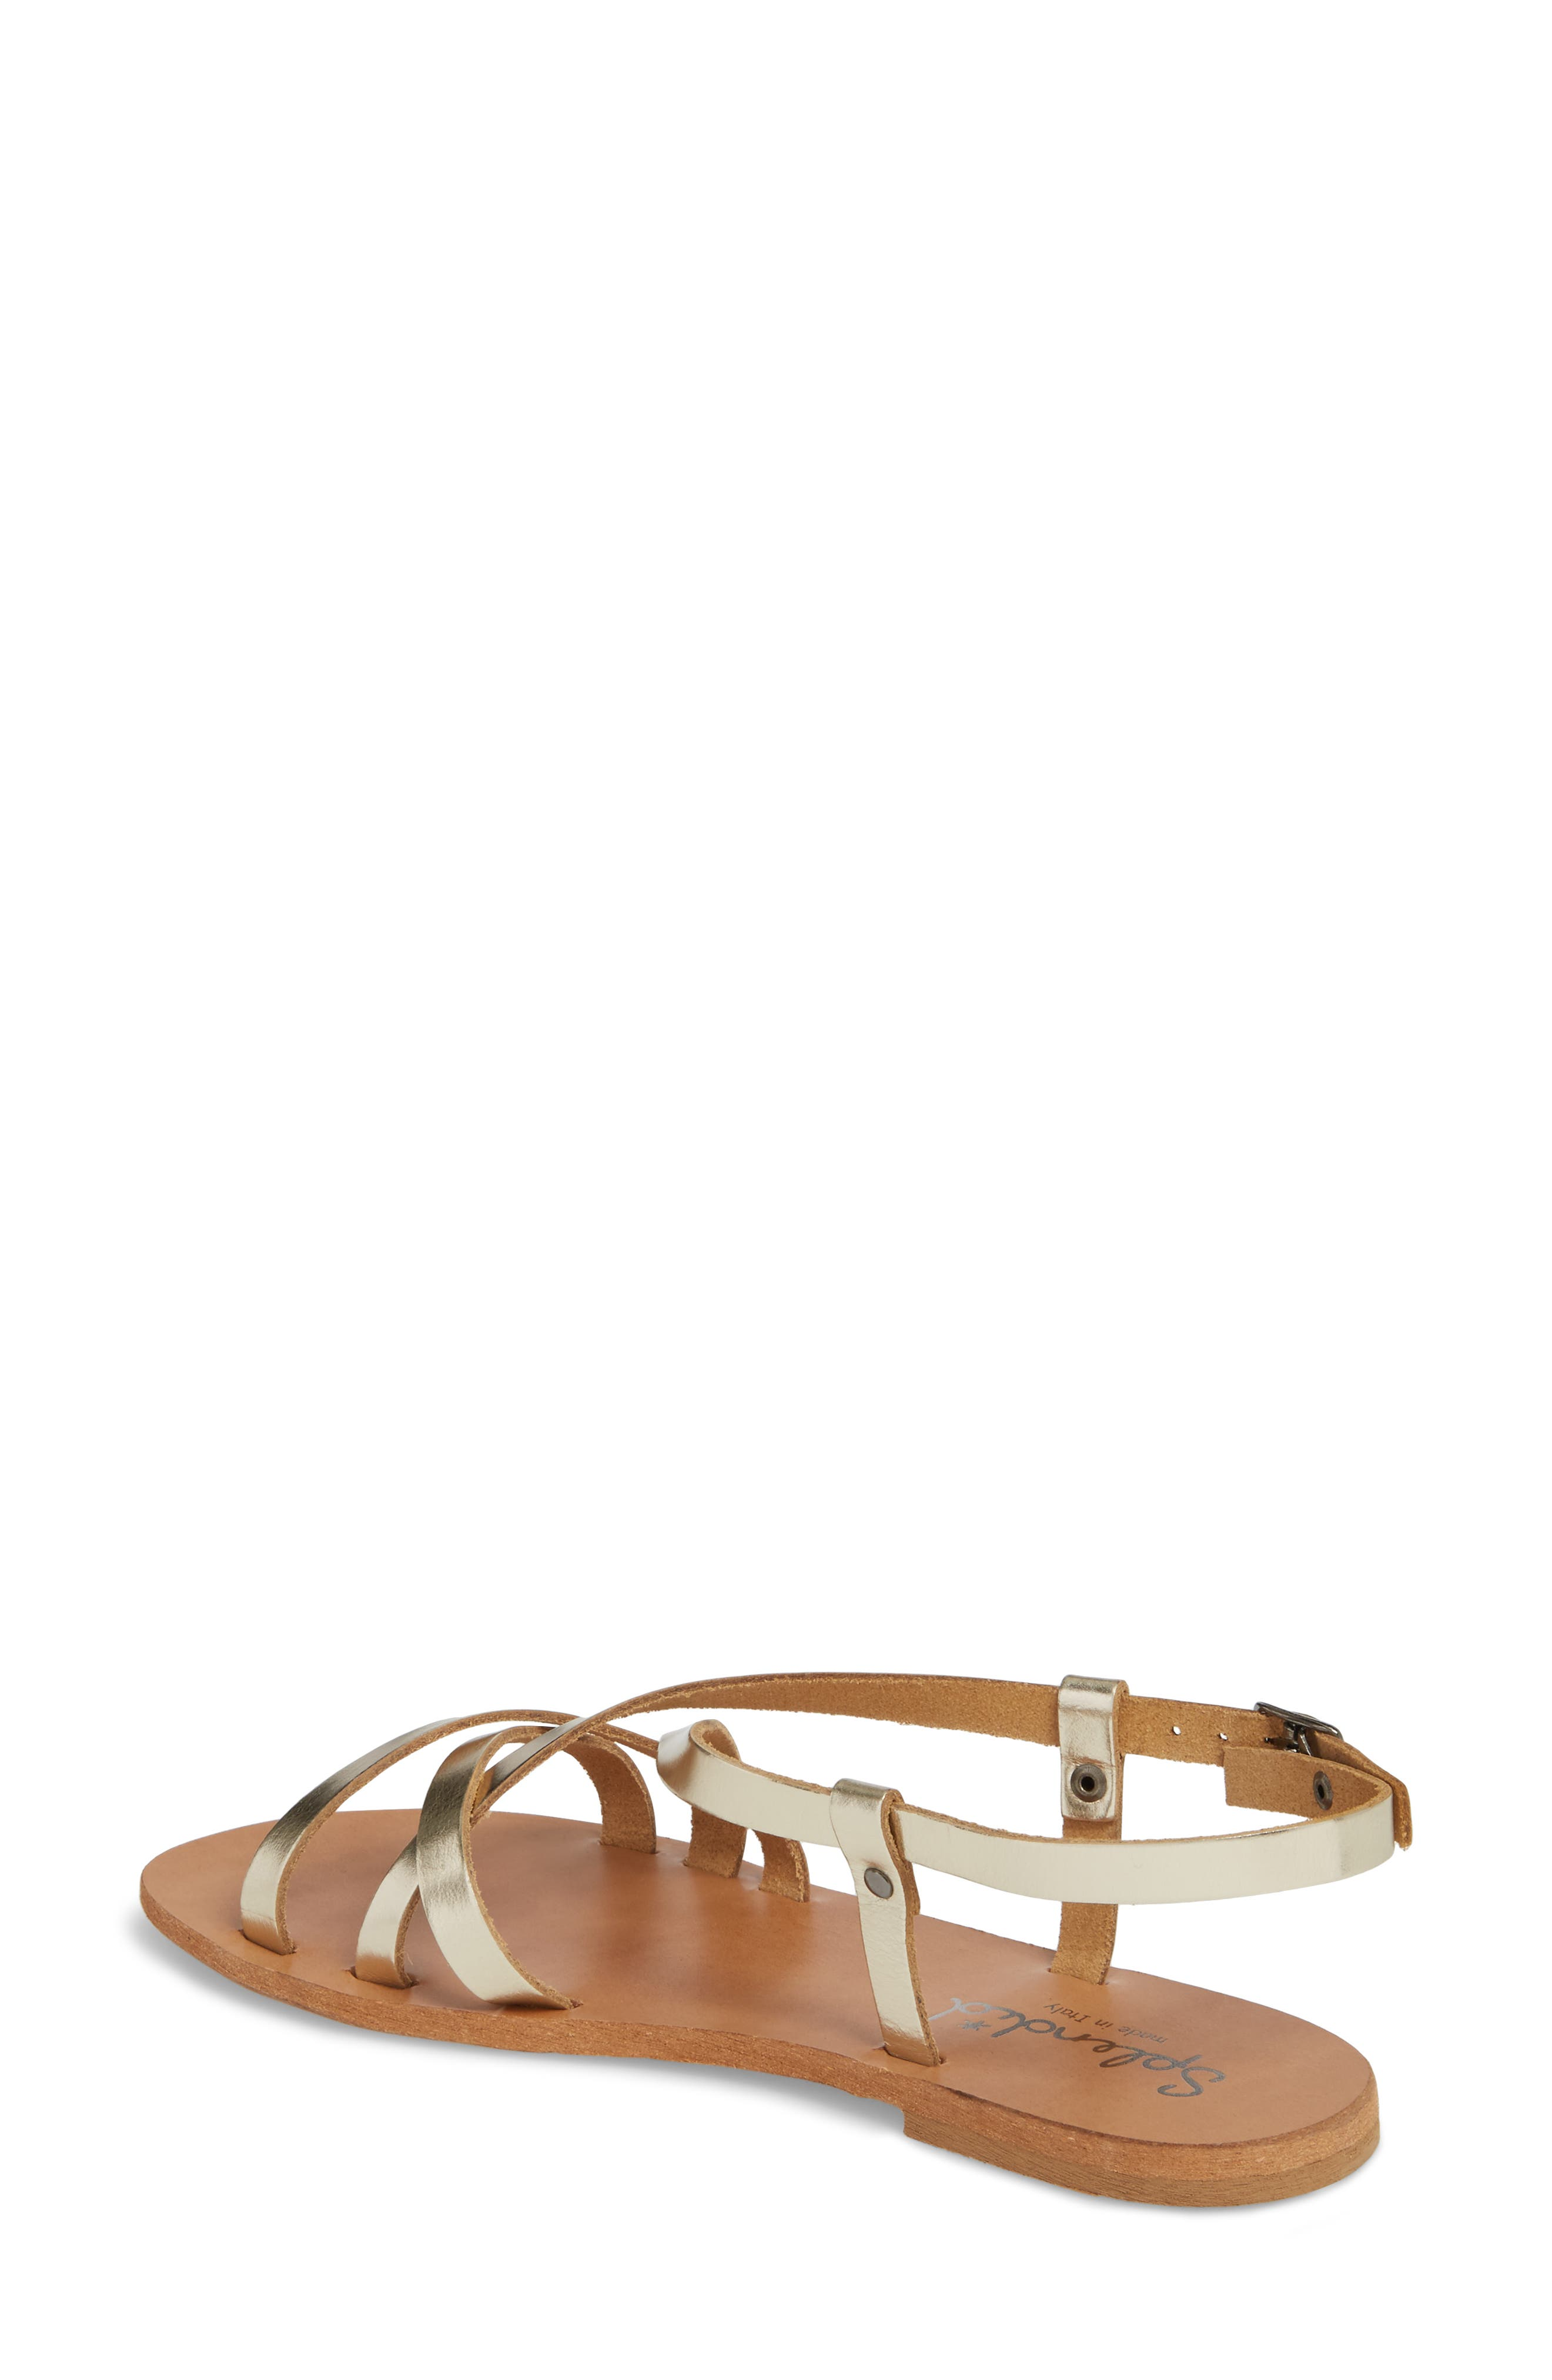 Bowen Sandal,                             Alternate thumbnail 2, color,                             Platino Leather